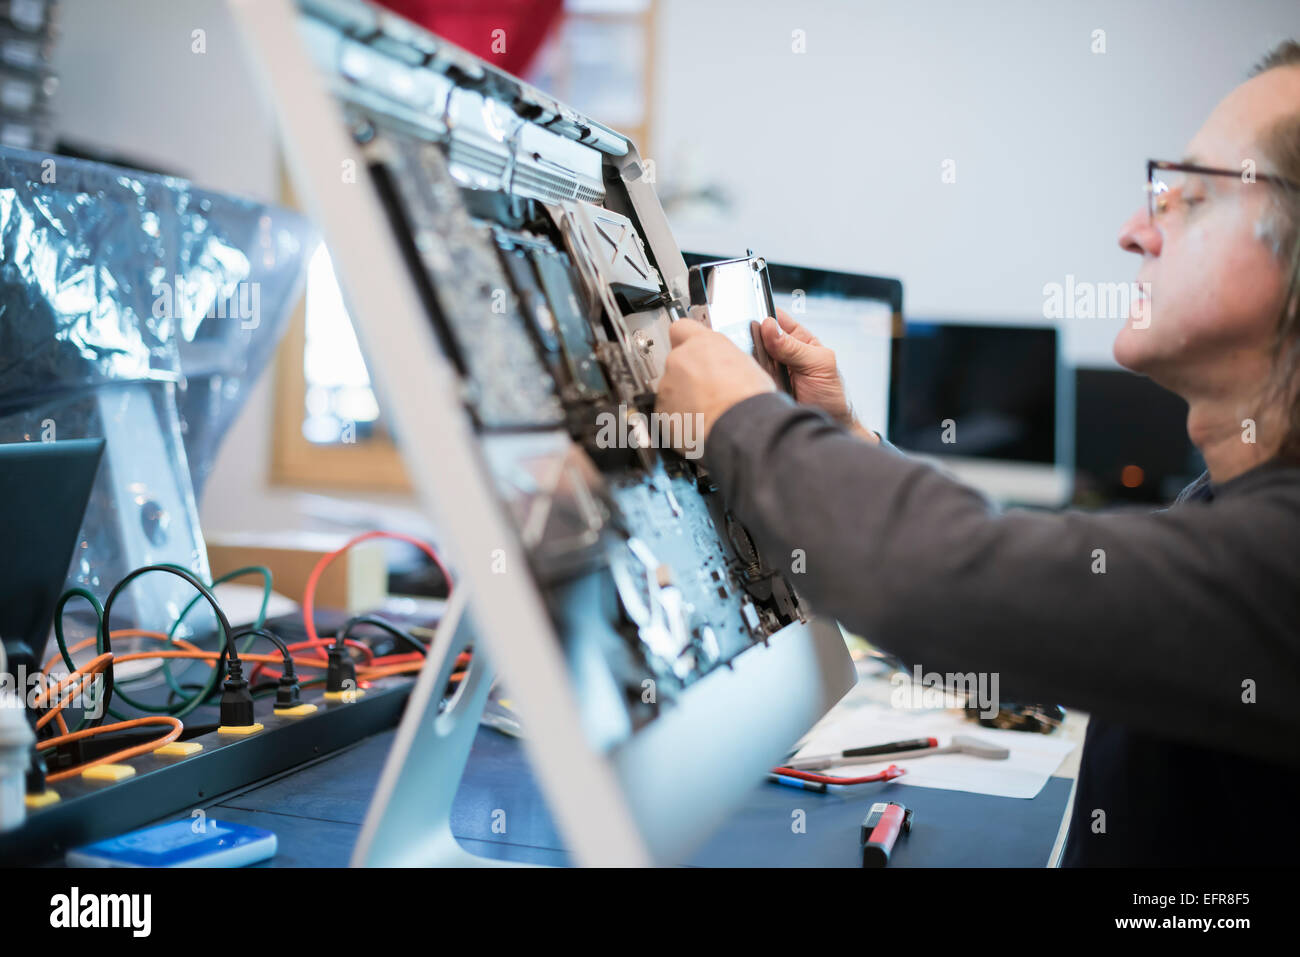 Computer Repair Shop. A man with a computer monitor, taking it apart to mend it. - Stock Image